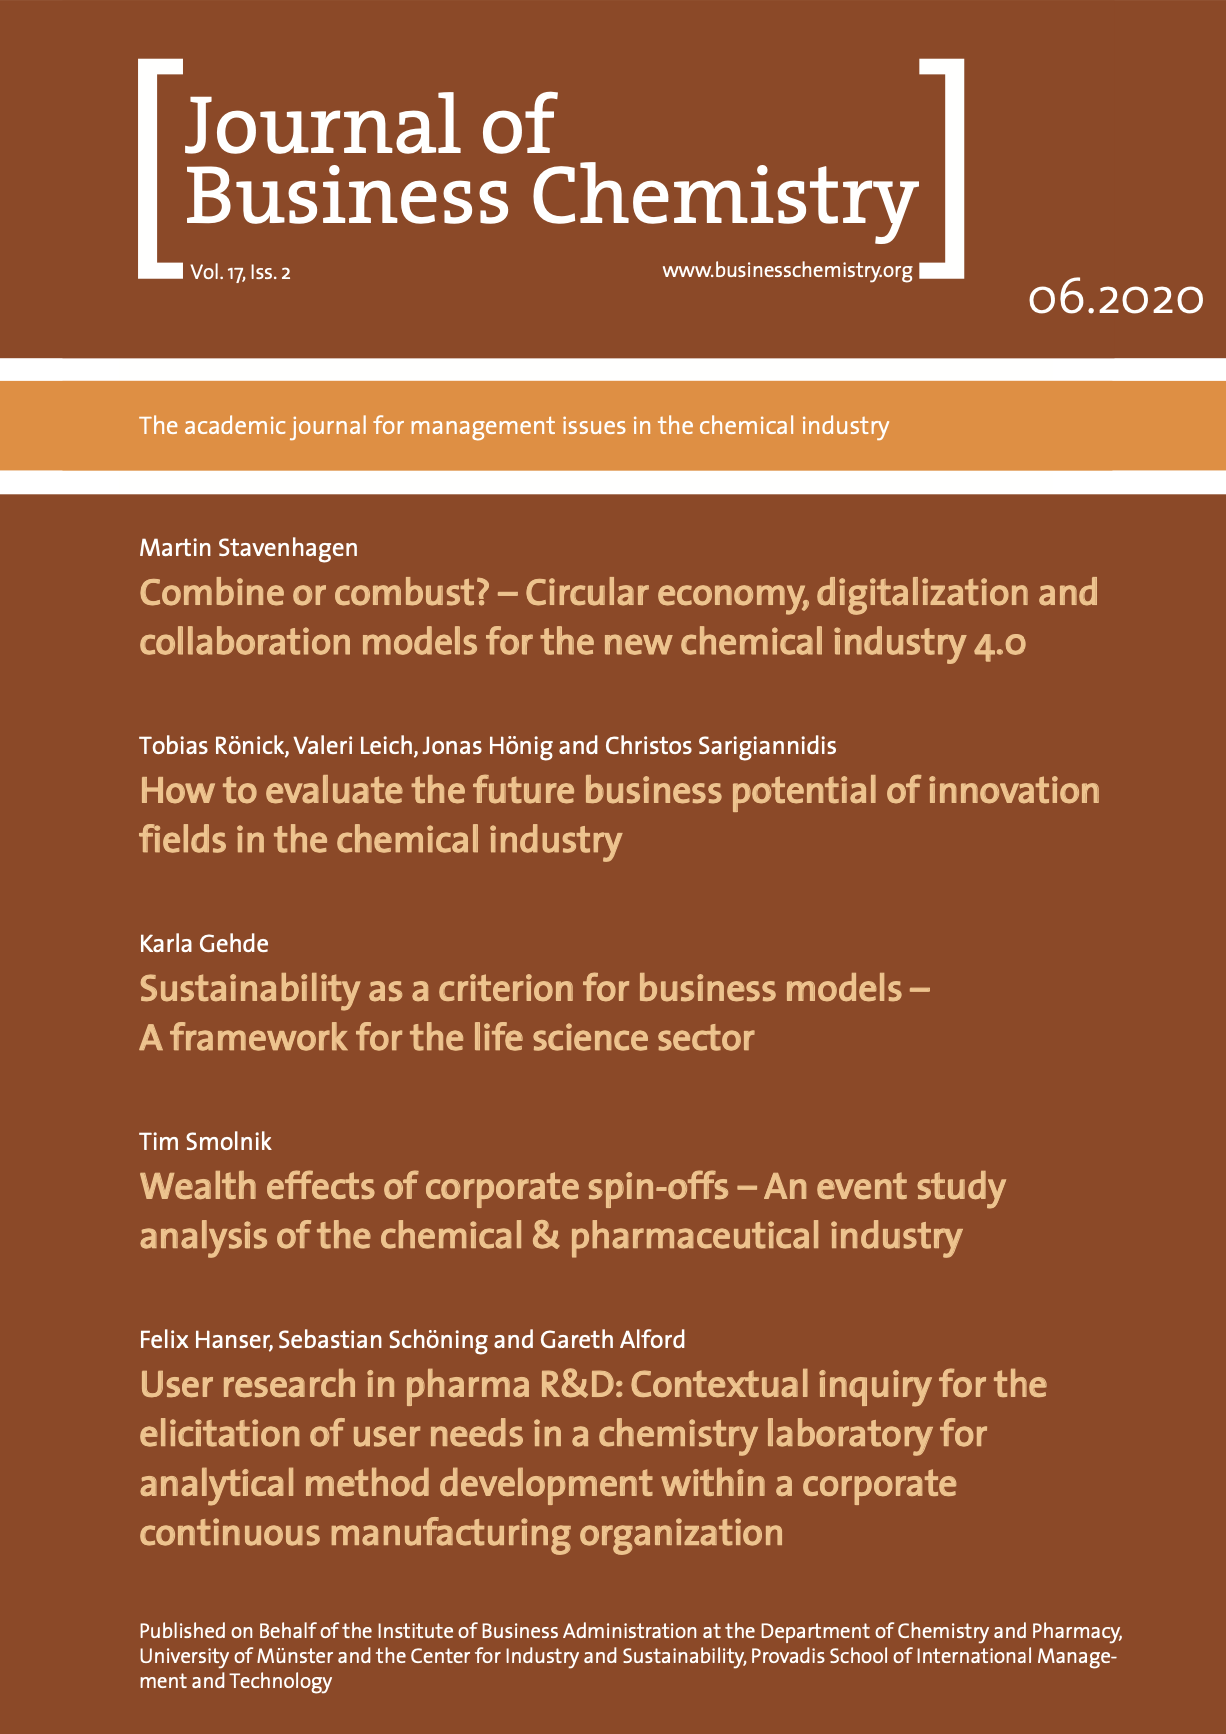 Journal of Business Chemistry June 2020